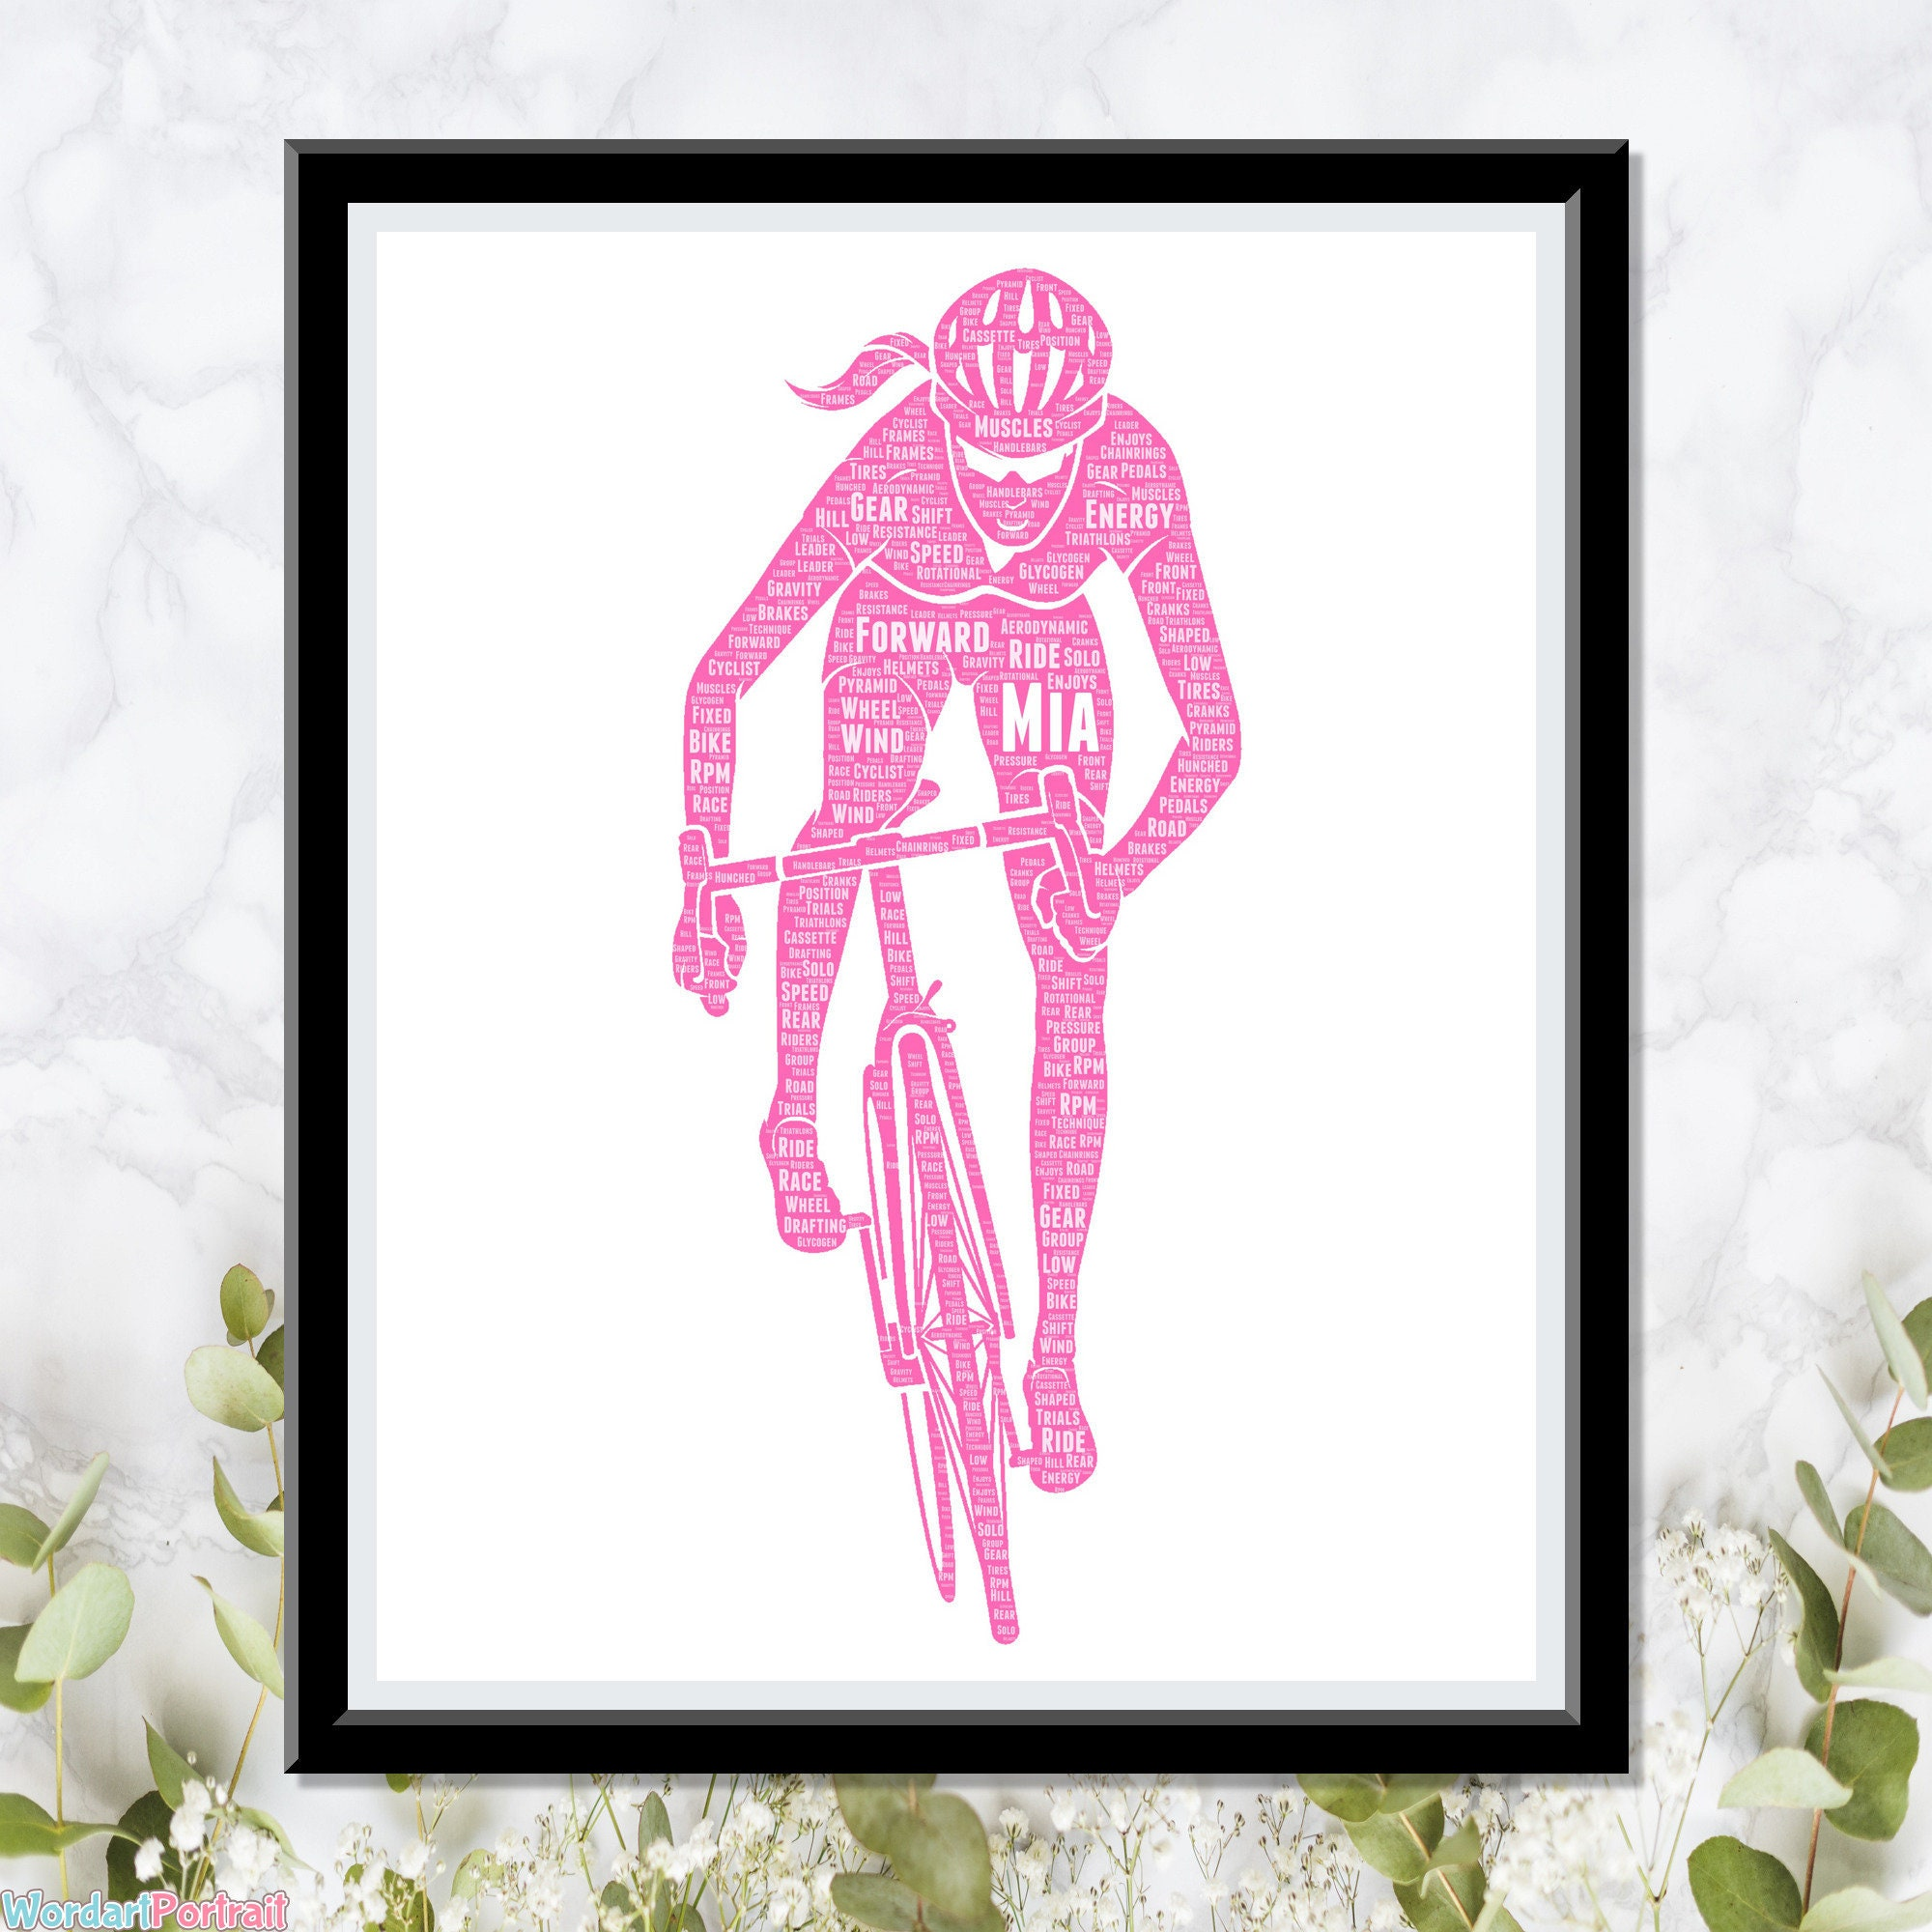 Female Cyclist Personalized Gift- for Her Girl Cycle - Racing Bicycle Gifts- Daughter Sister Girlfriend For Her Gifts Wordle Word Art Cloud